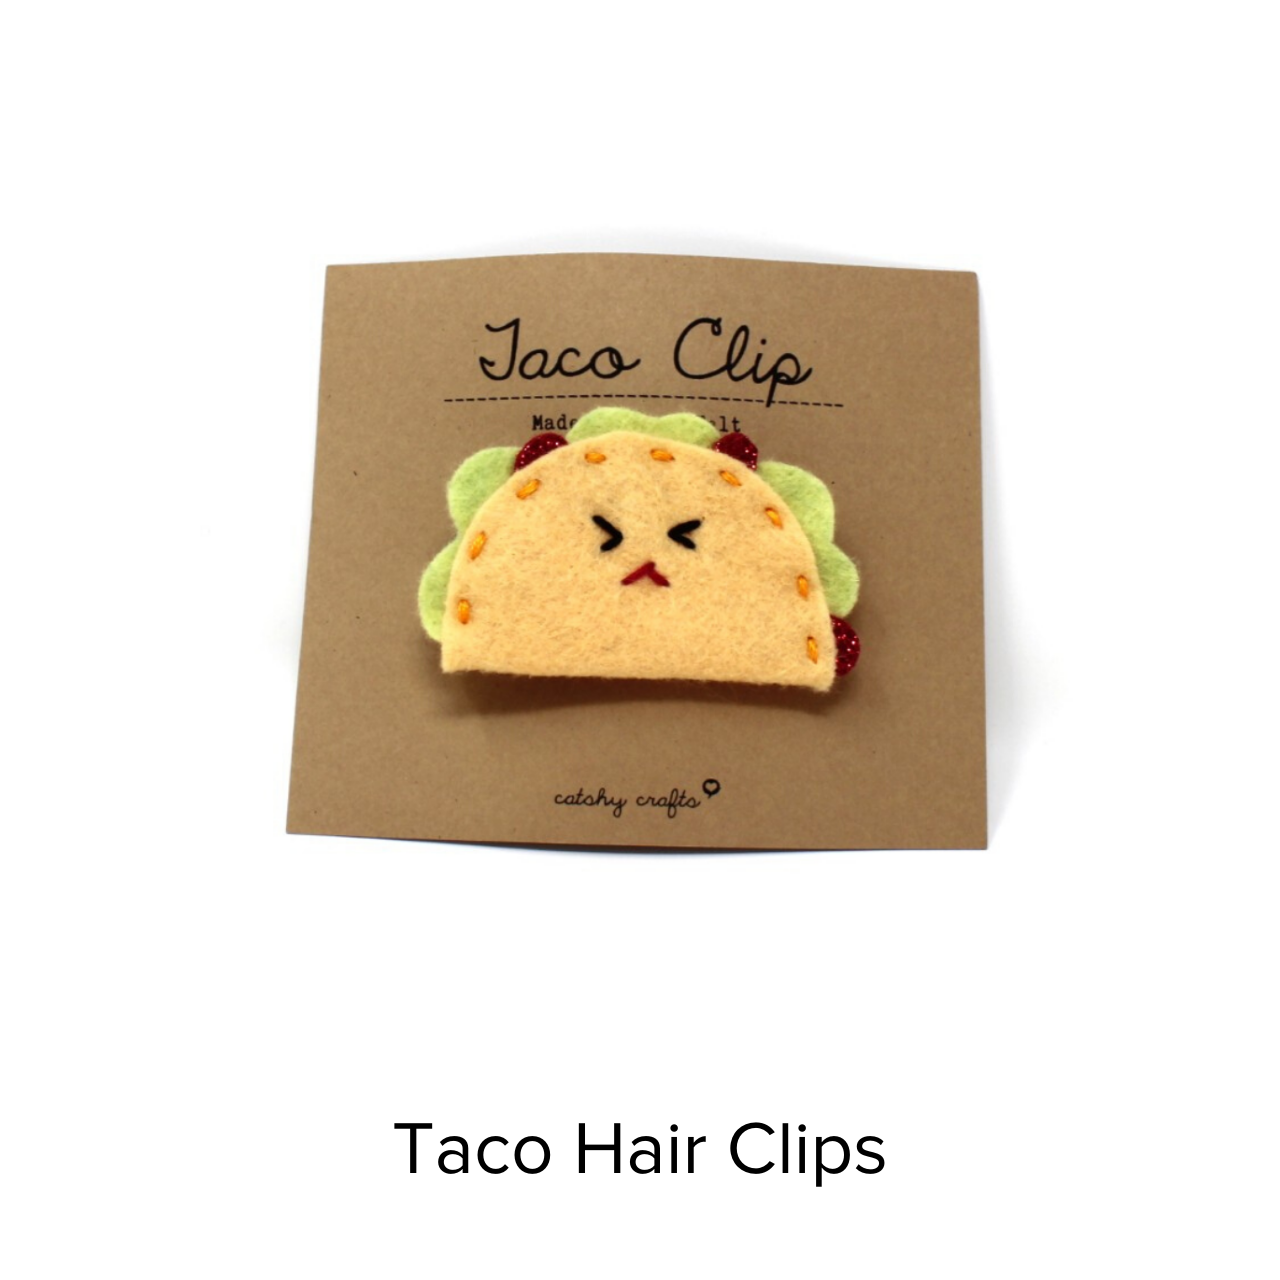 Catshy Crafts Taco Hairclip